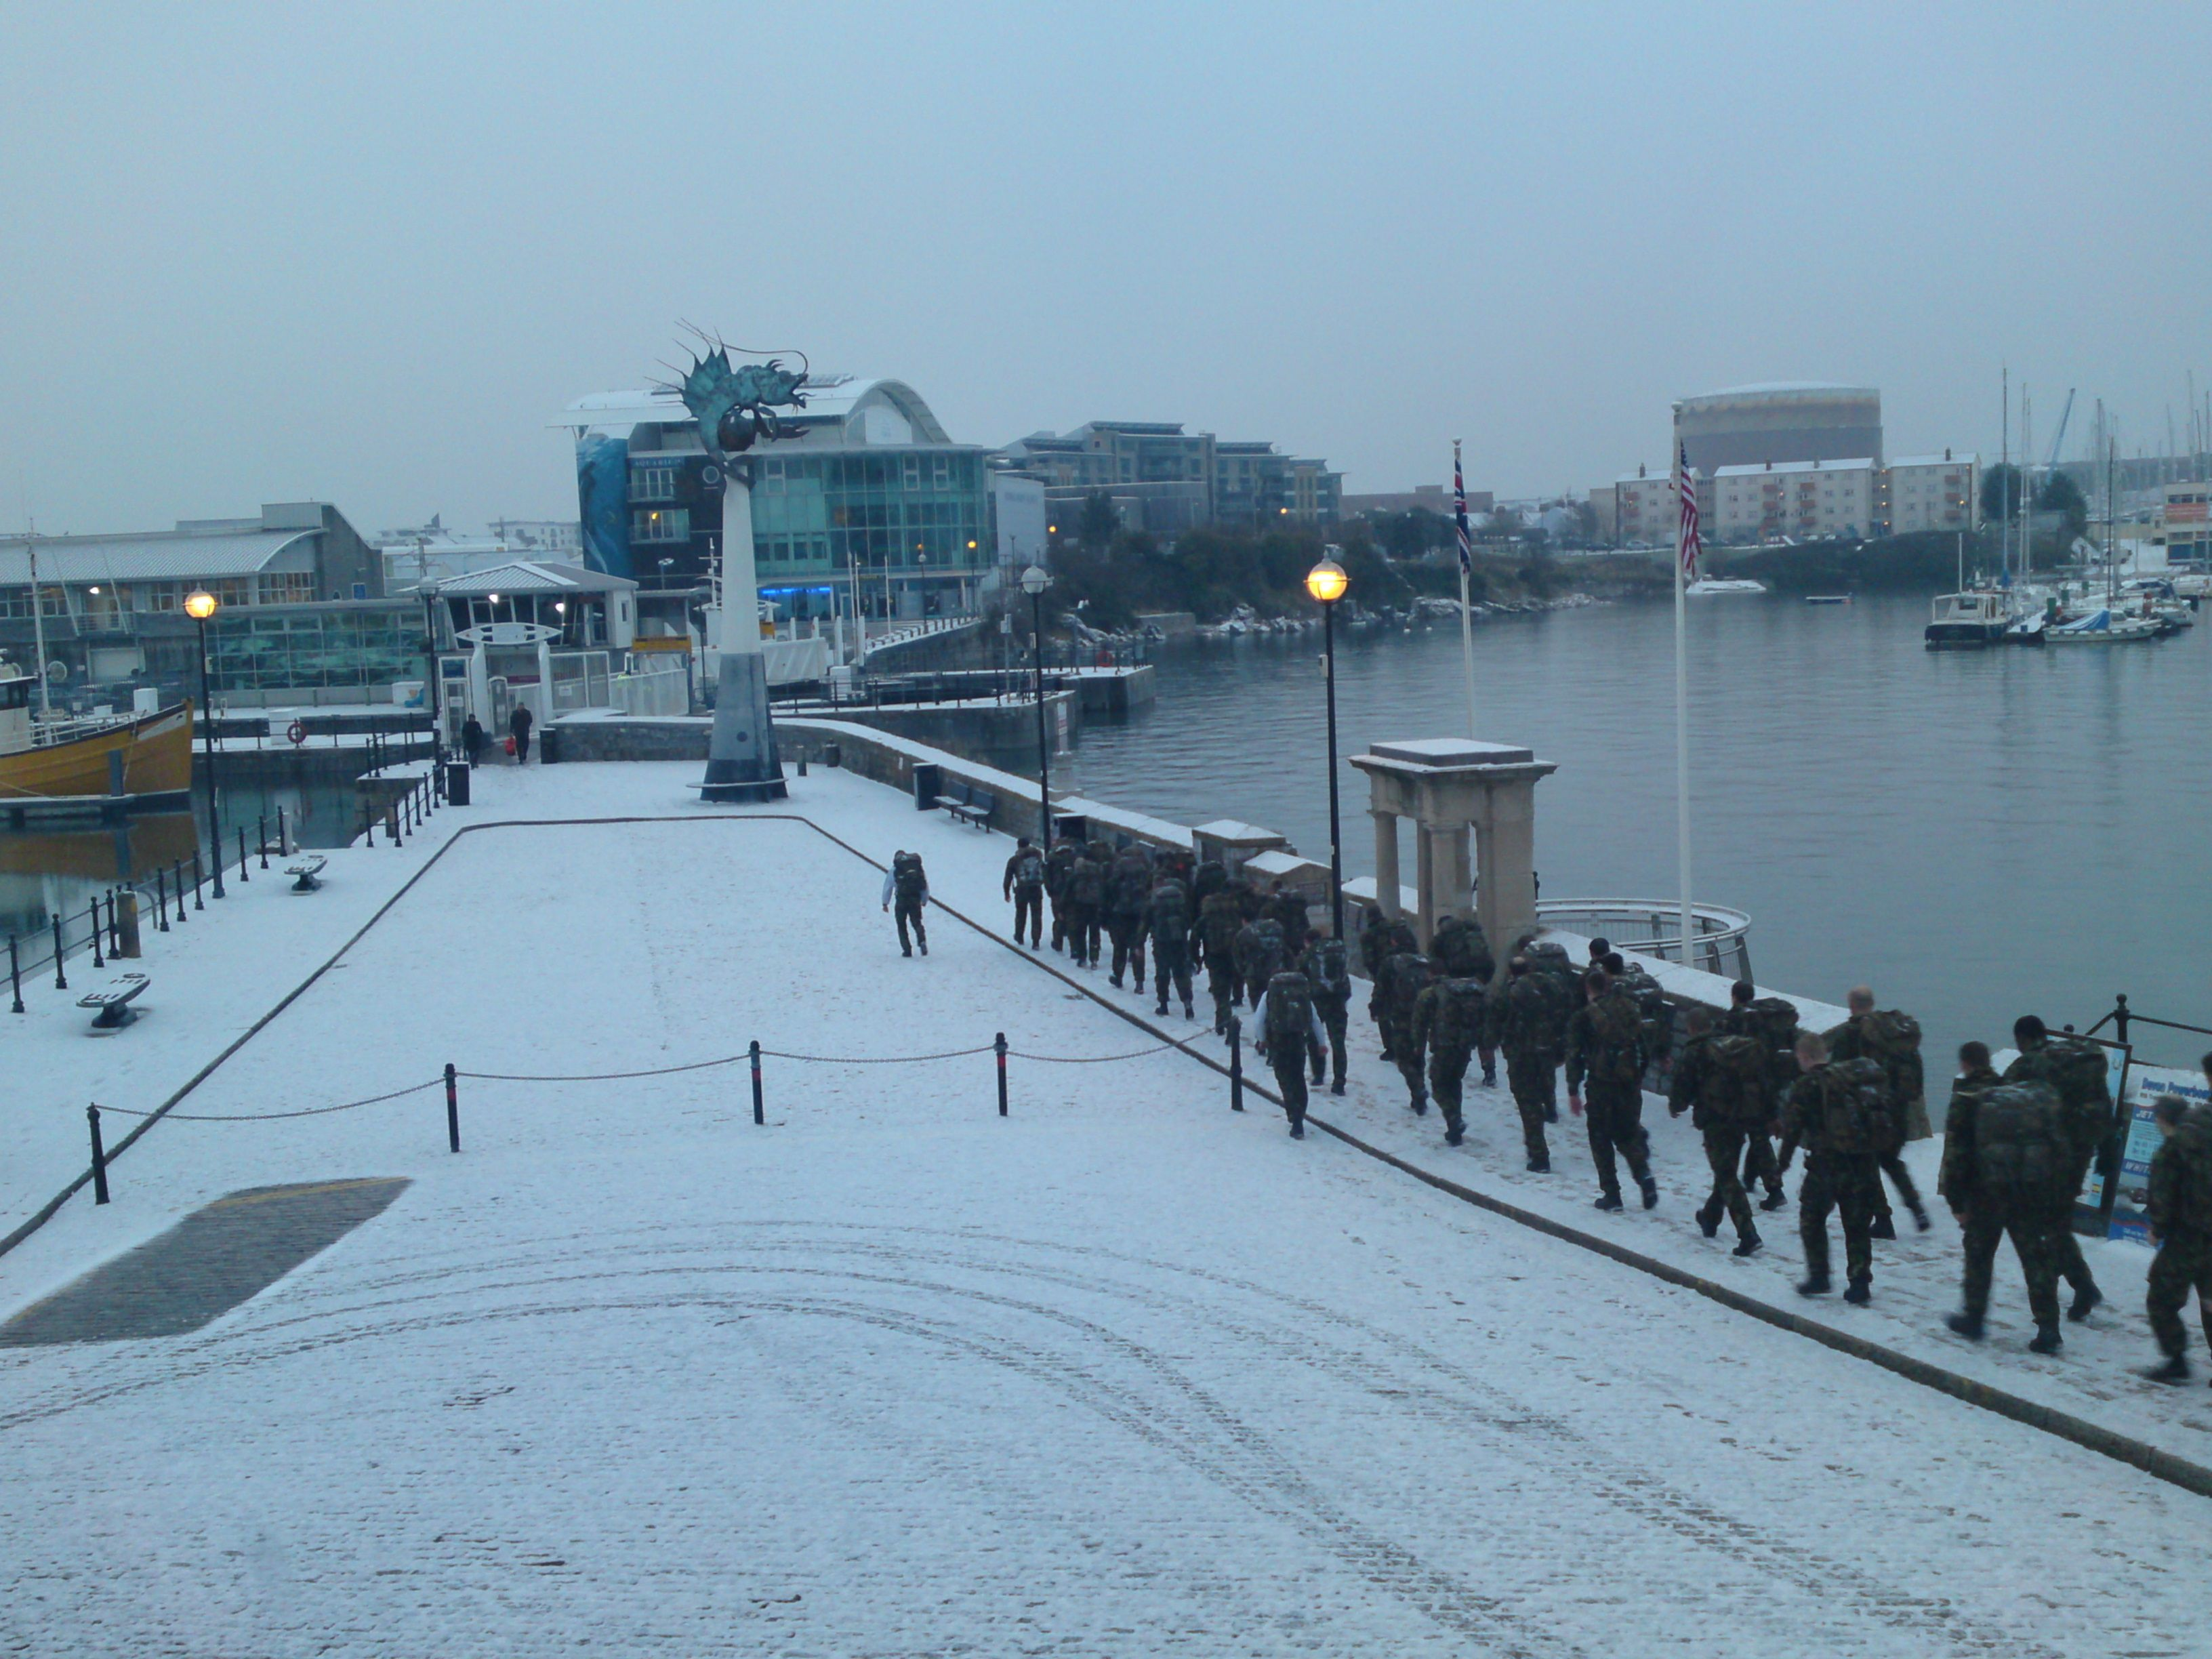 Royal Marines training during snow fall on Plymouth Barbican 2011